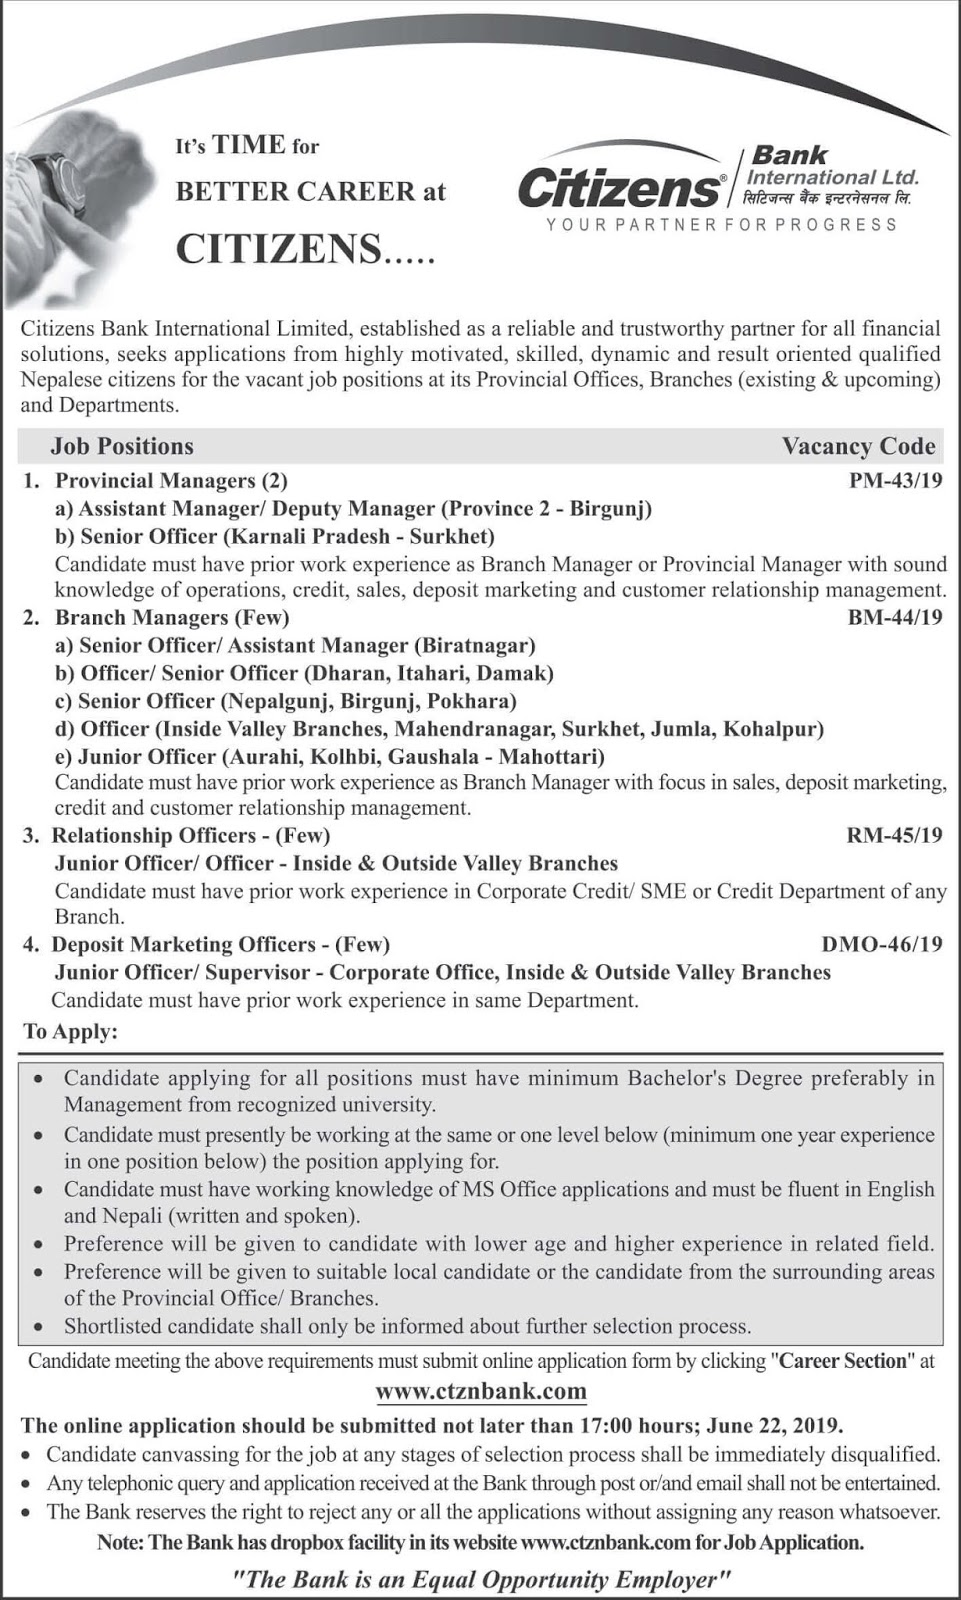 Vacancy Announcement from Citizens Bank International Ltd.